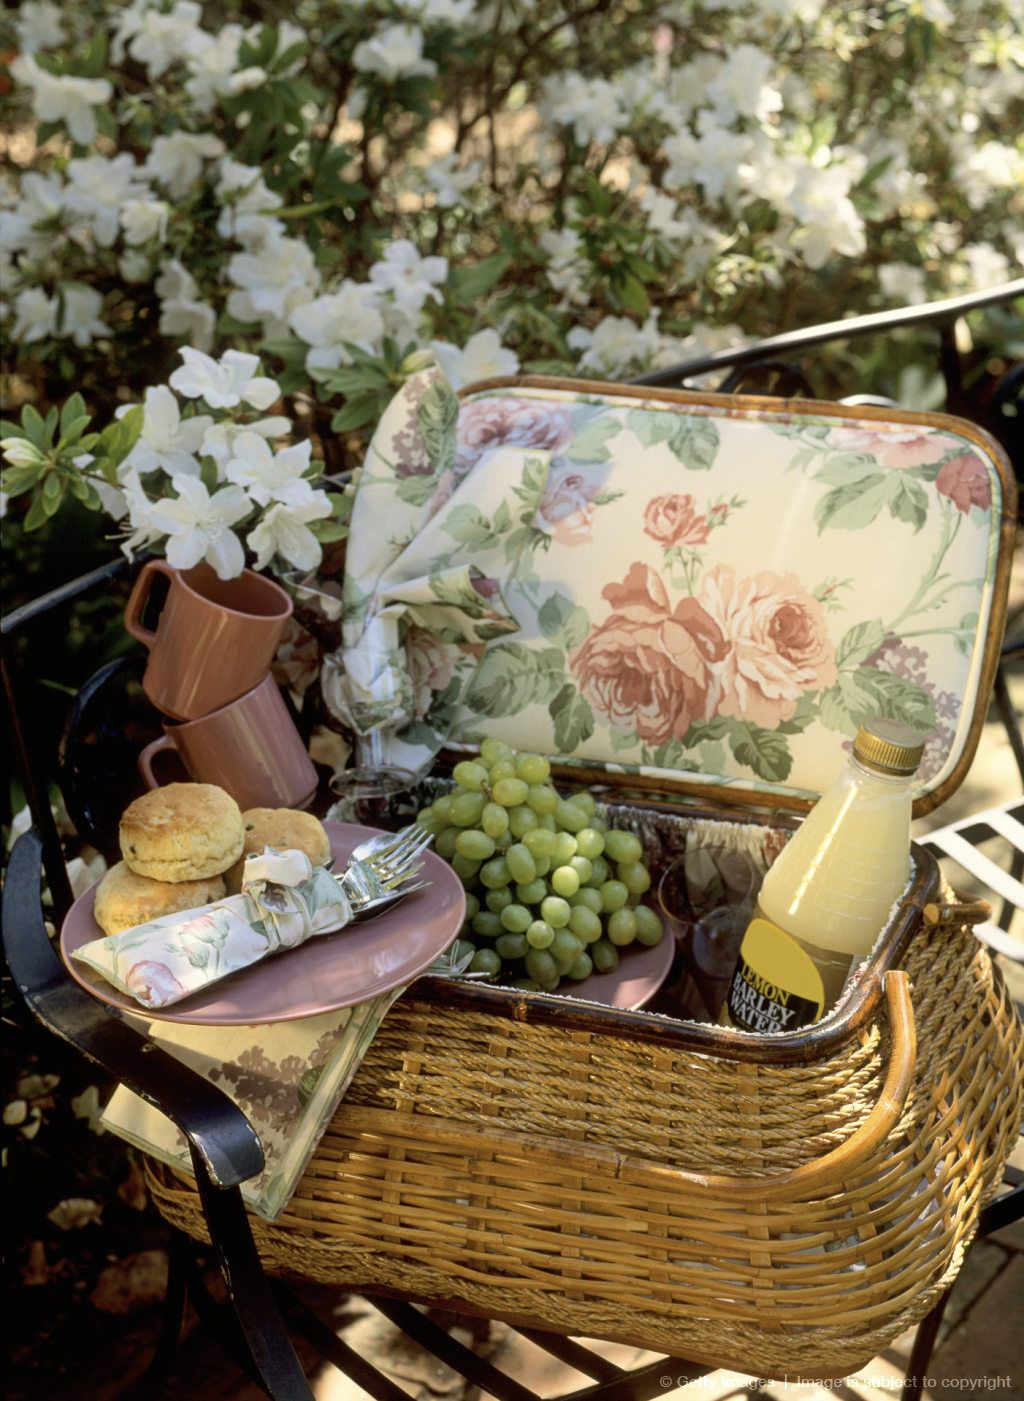 Picnic Basket Food : Picnic basket with food and flowers time